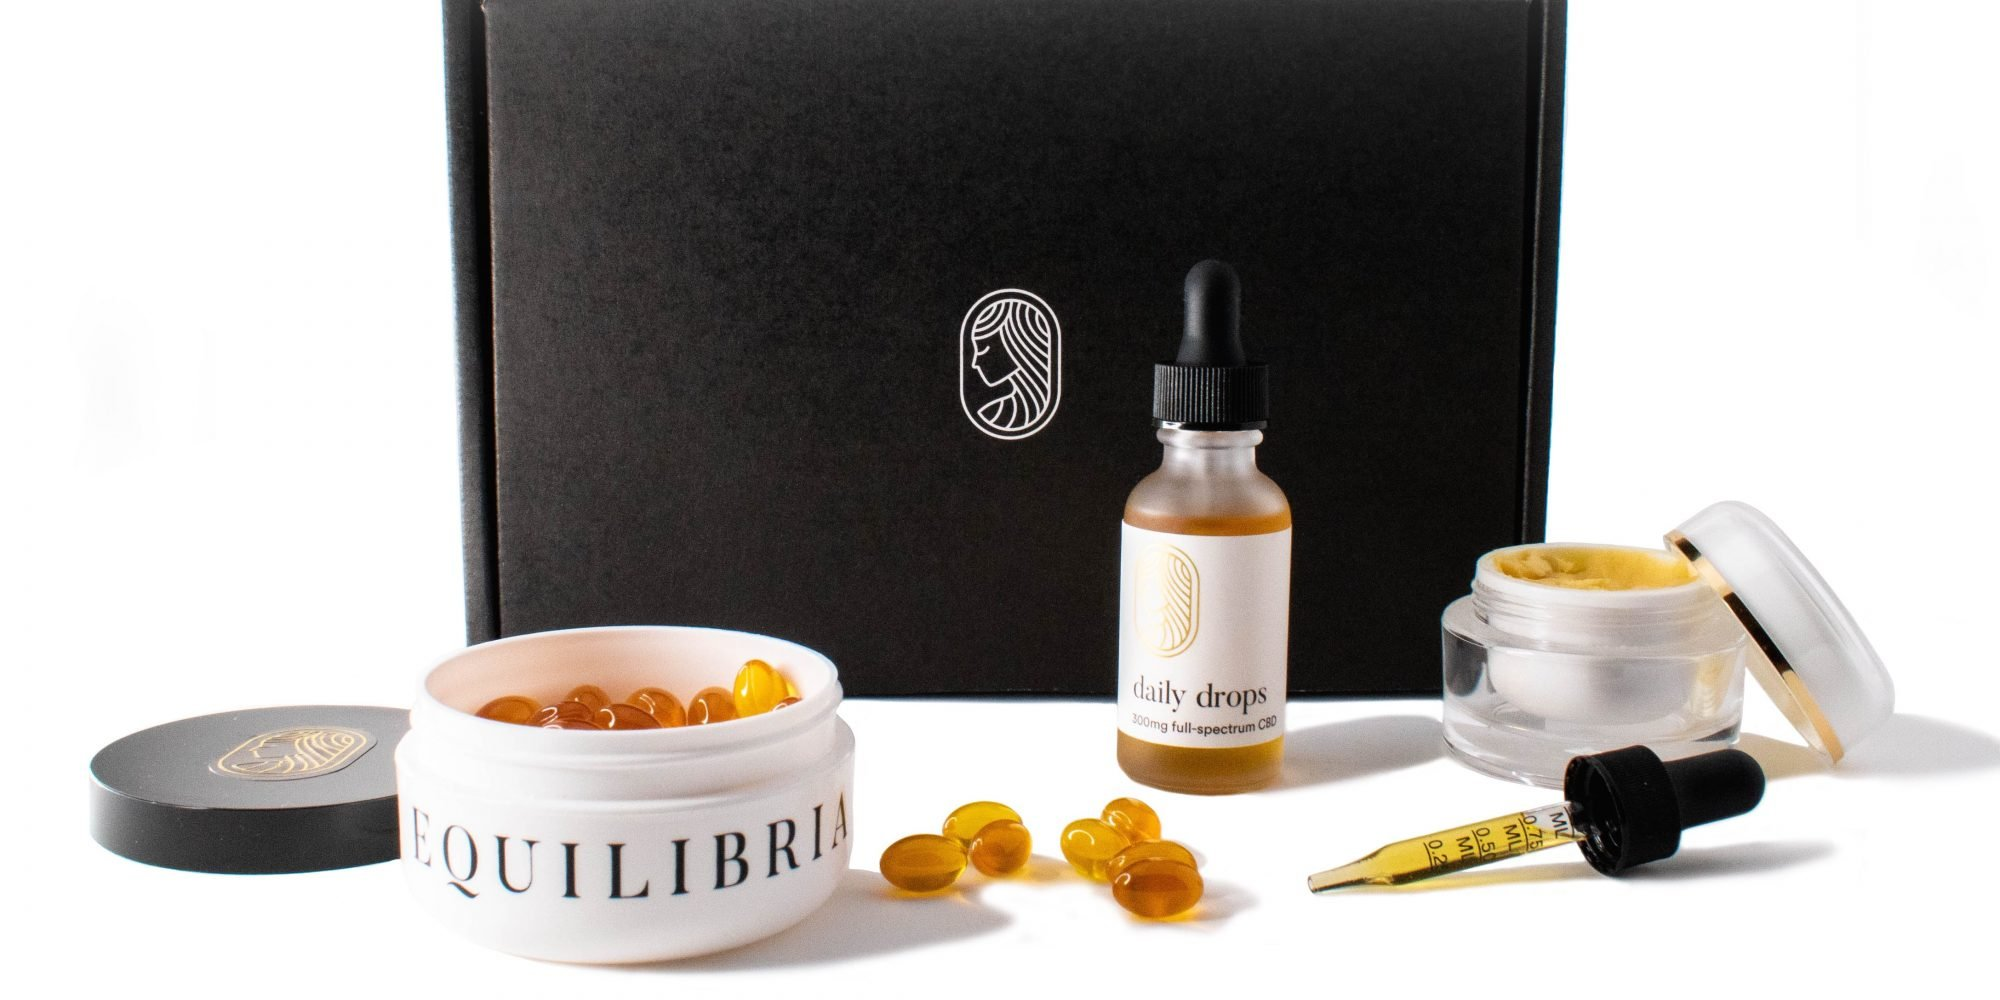 Equilibria, The CBD Startup Offering Dosing Guidance, Gets A Dose Of Nearly $2M In Funding